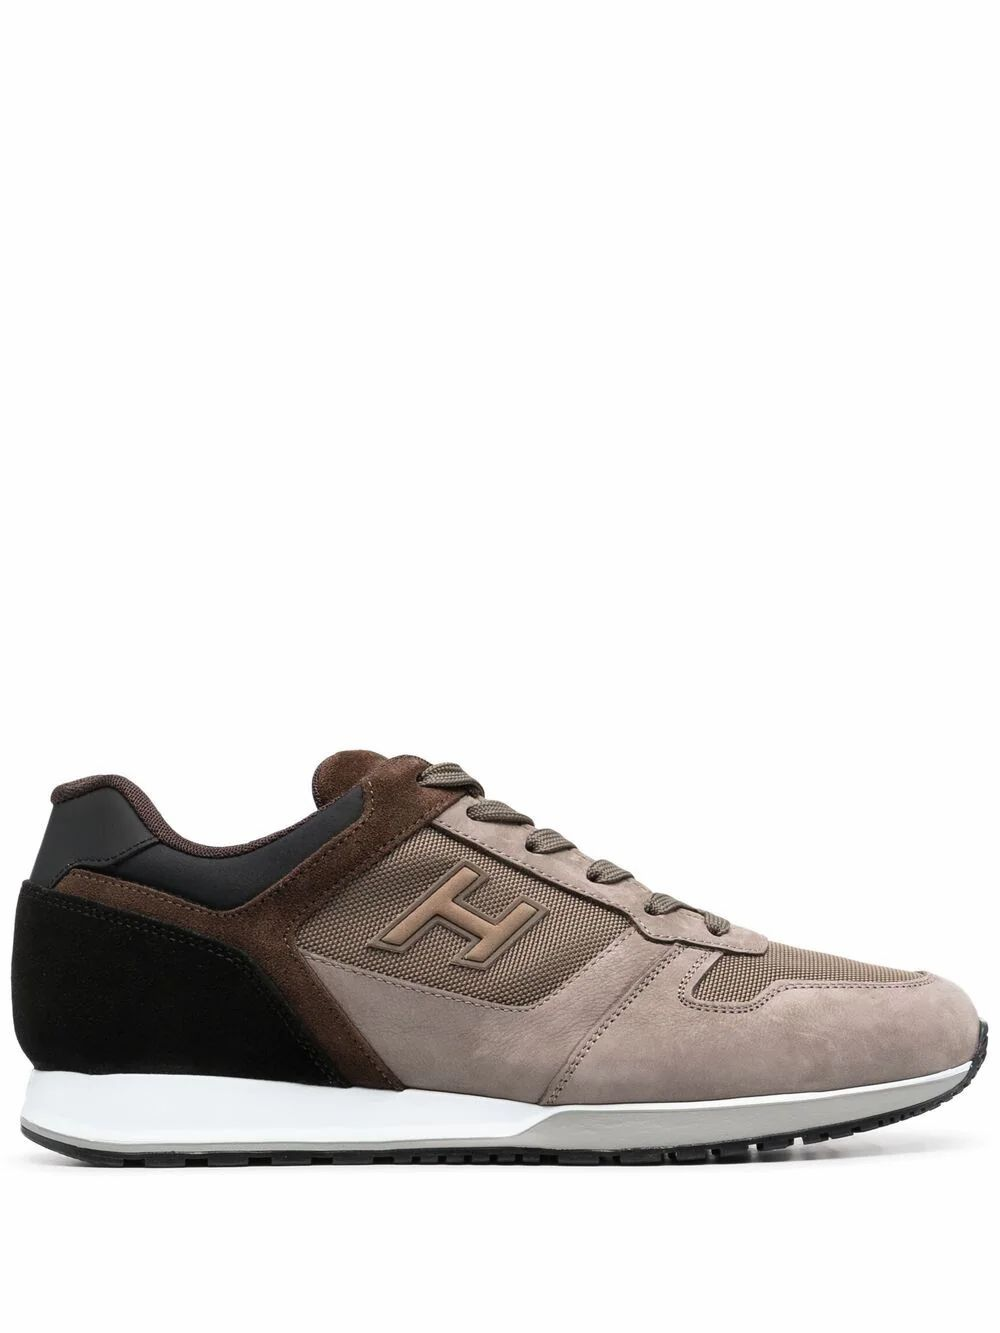 Hogan Suedes HOGAN MEN'S HXM3210Y860P9S845Z BEIGE LEATHER SNEAKERS